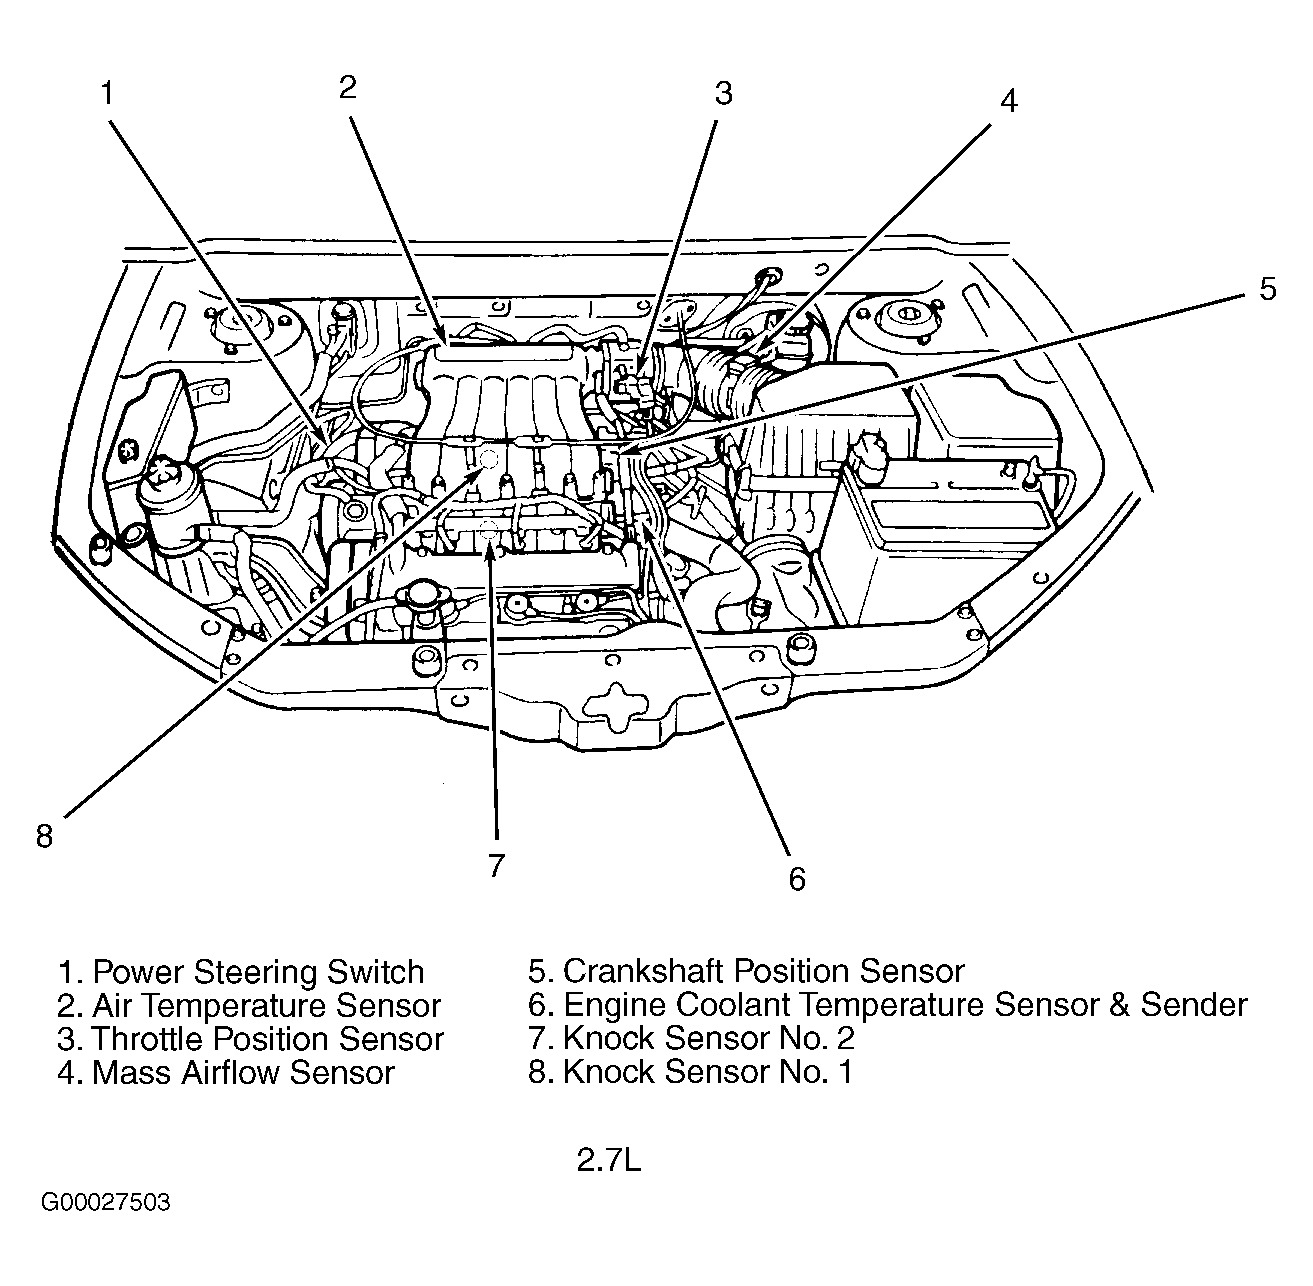 Hyundai Santa Fe Parts Diagram